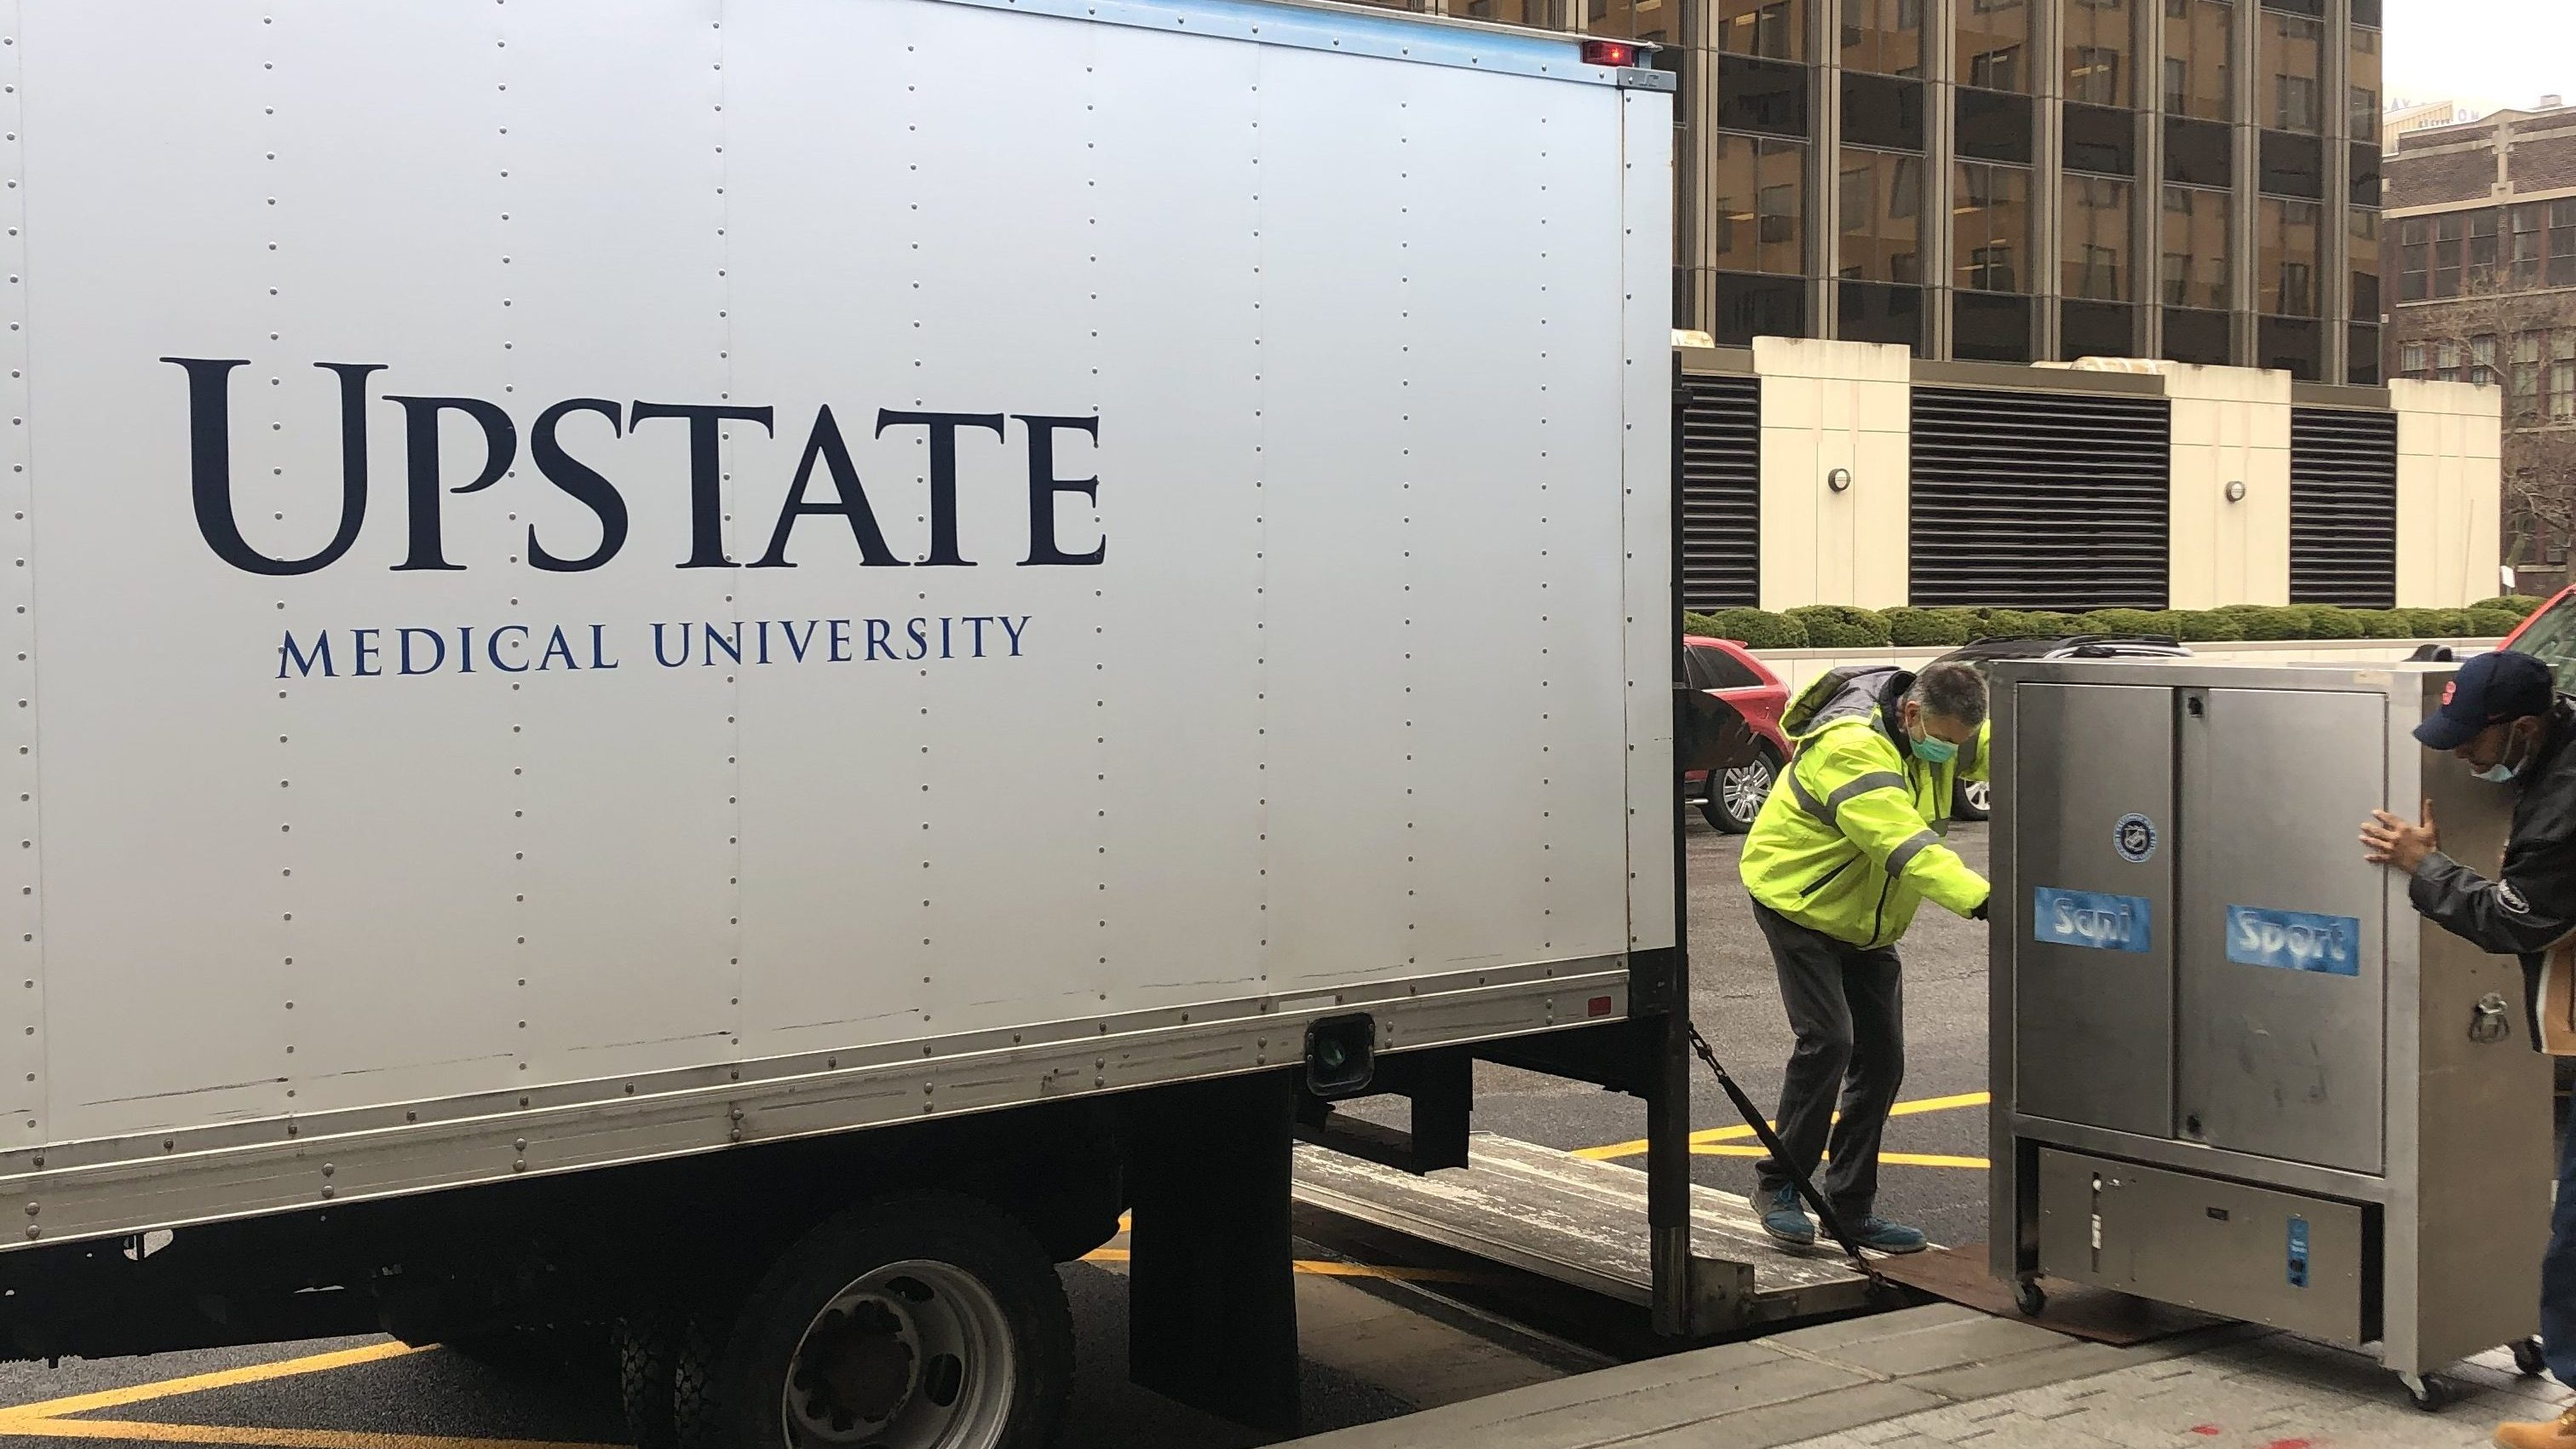 Syracuse Crunch delivered two Sani Sport machines to Upstate Hospitals to help clean face shields.